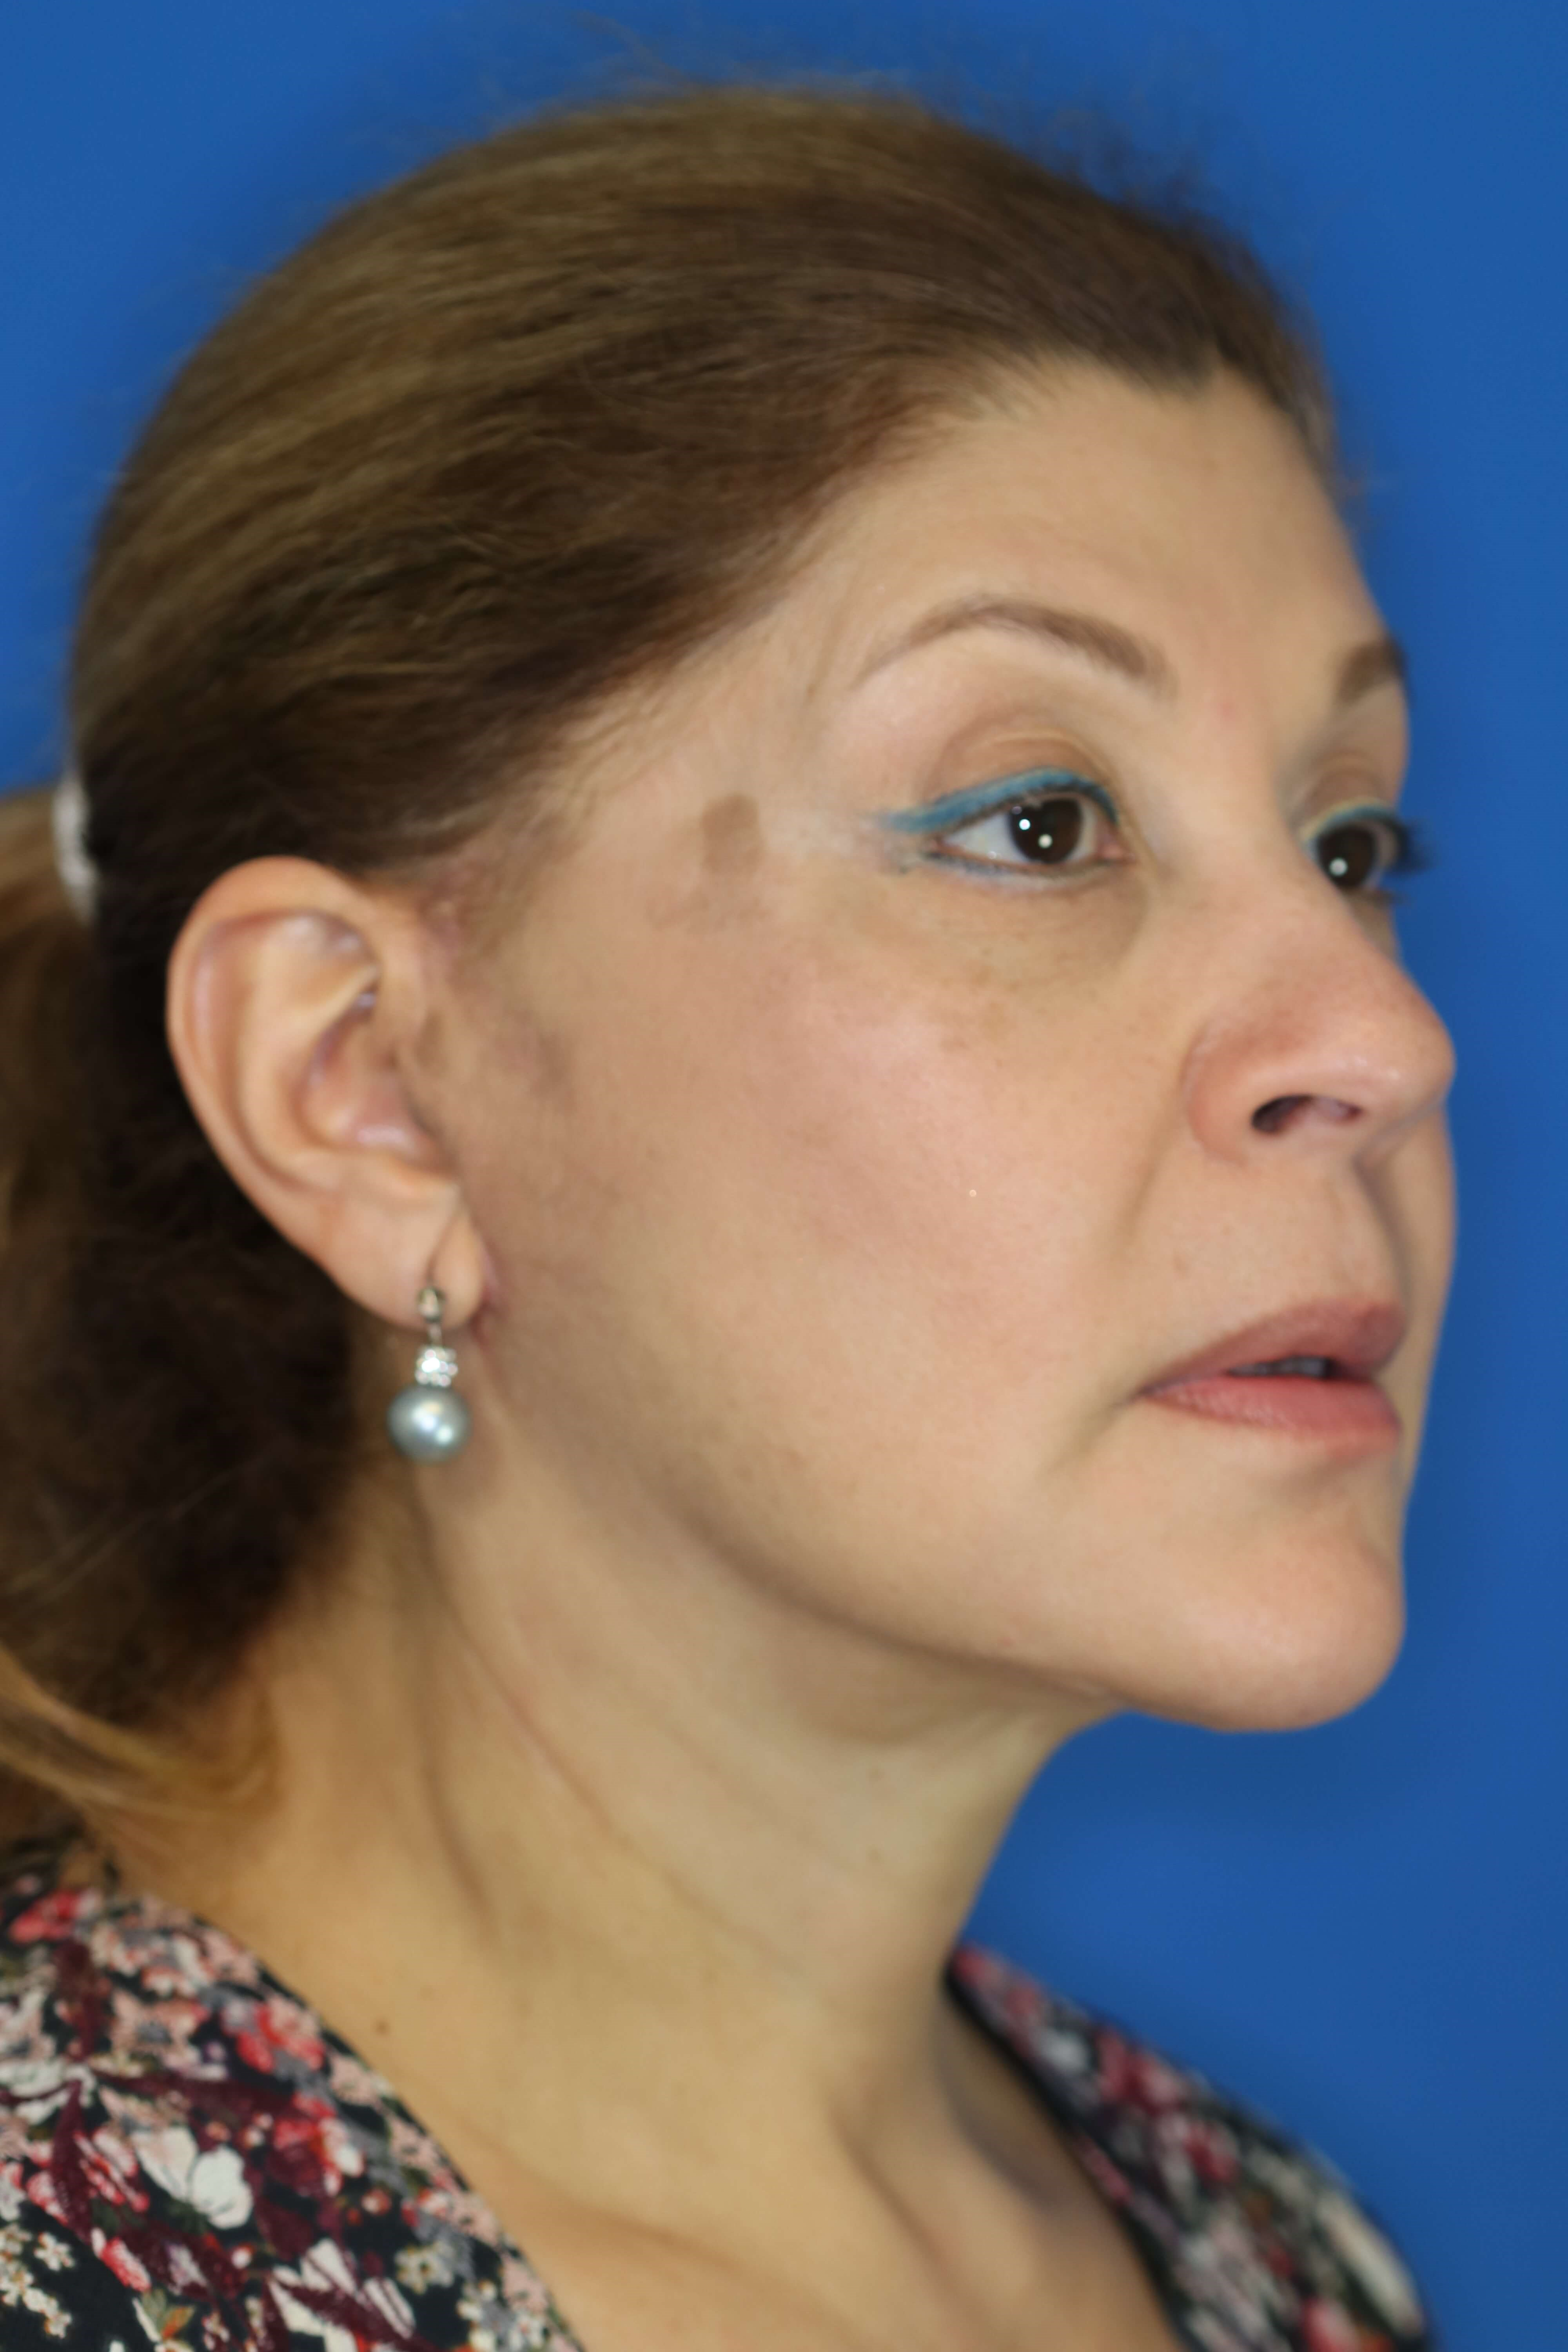 Facelift in Downers Grove, IL 3 months post op